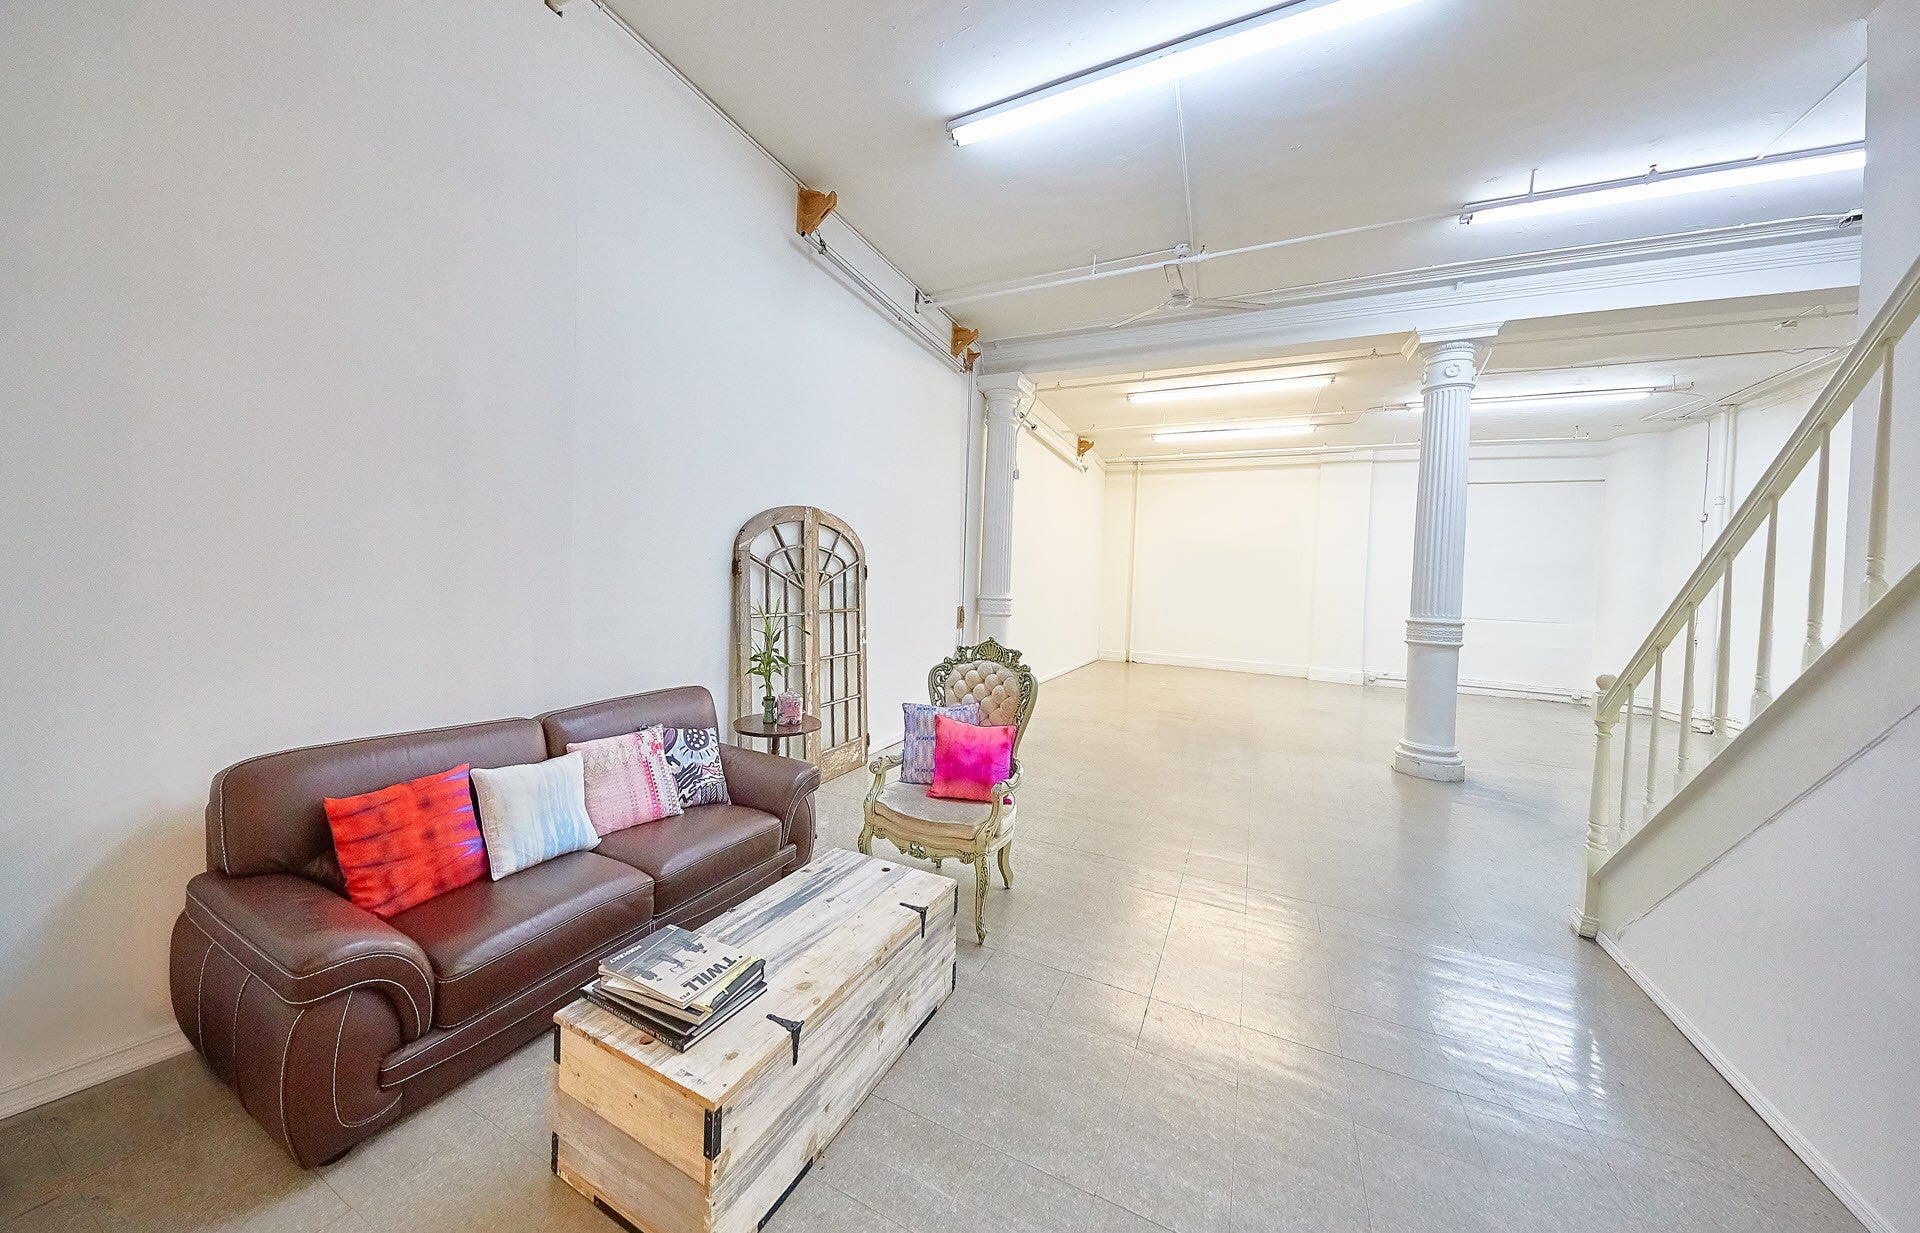 WORKSHOP SPACE FOR RENT IN NEW YORK